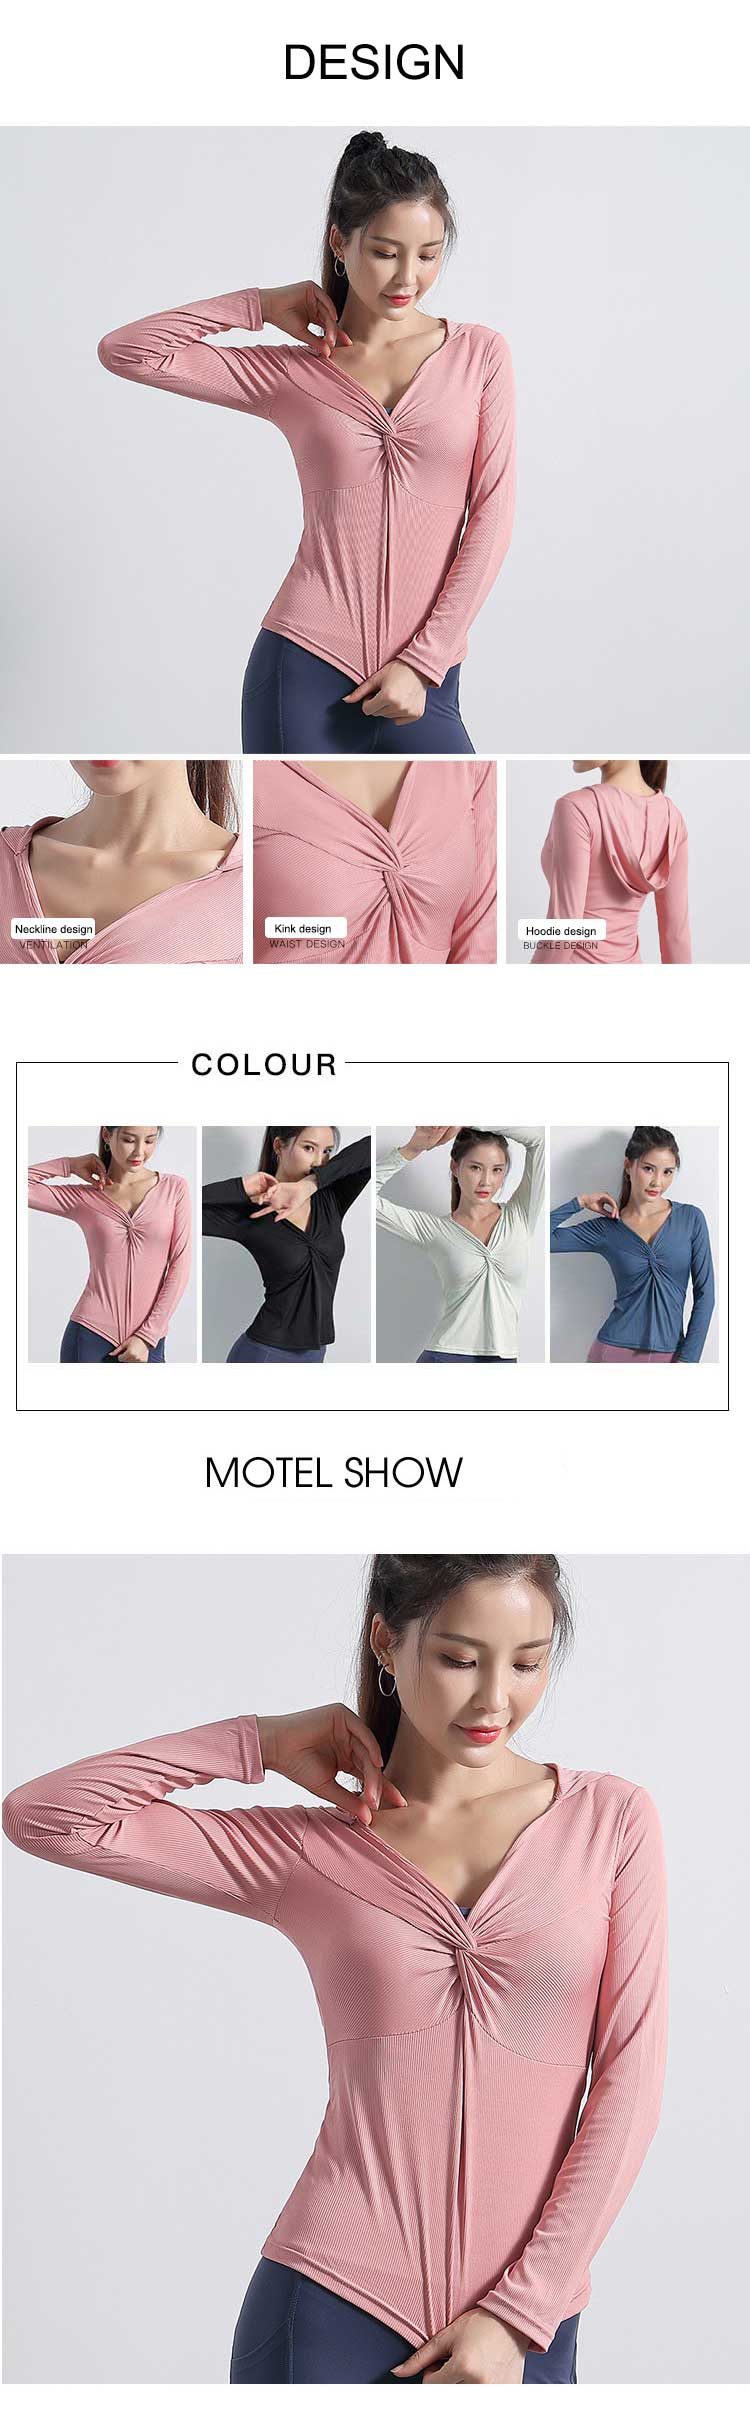 This-long-sleeve-active-shirts-adopts-the-three-dimensional-and-close-fitting-cutting-design